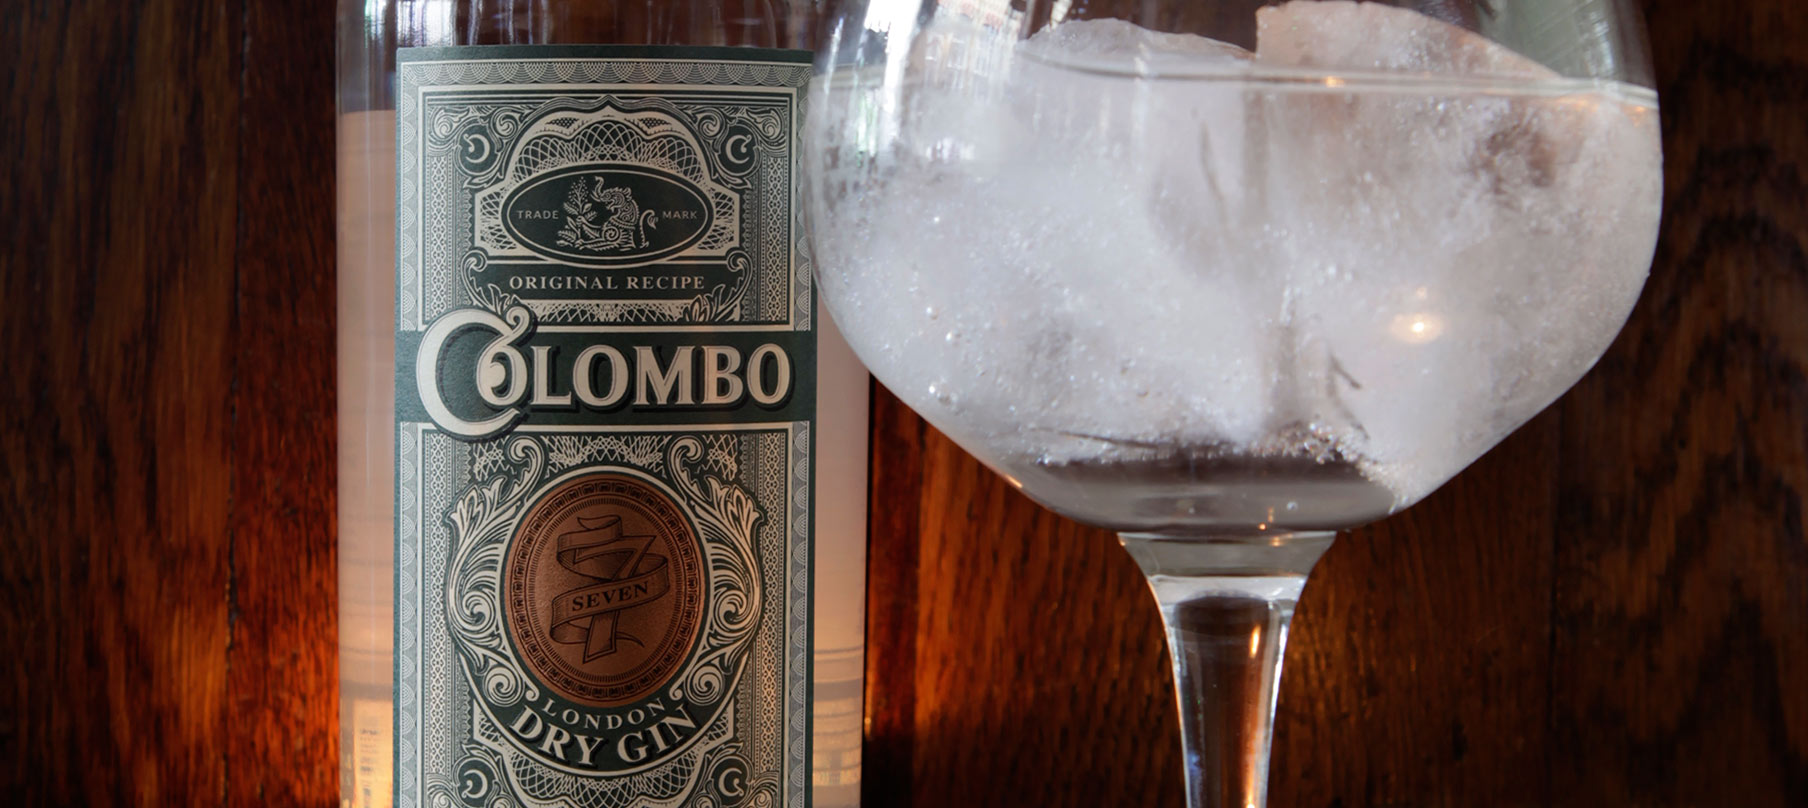 Gin Review : Colombo 43.1% ABV